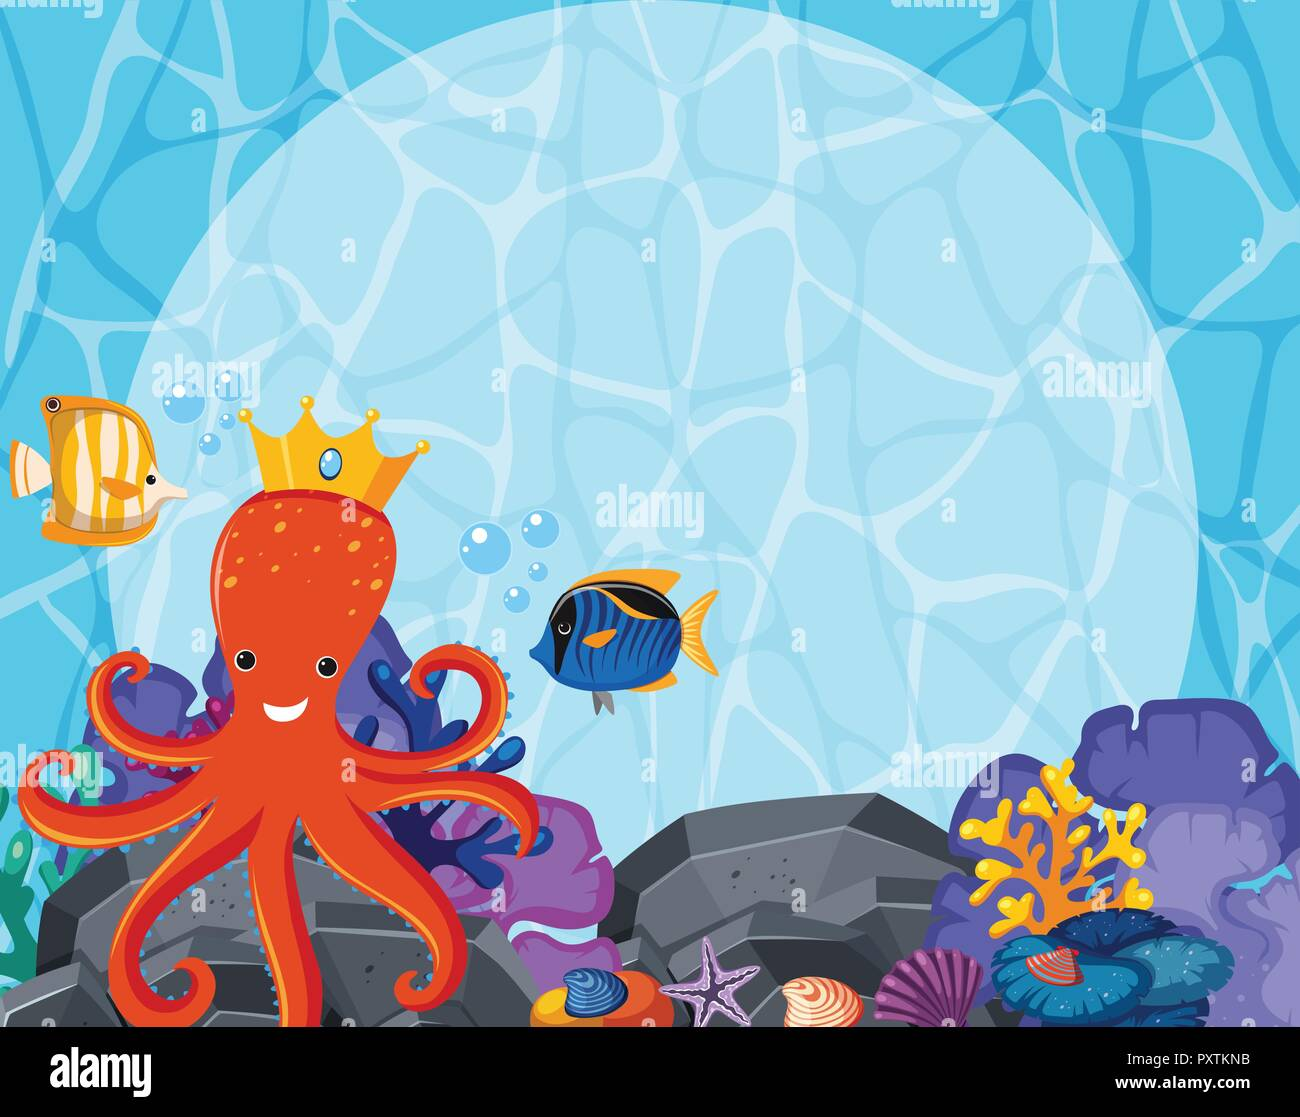 8x12 FT Octopus Vinyl Photography Background Backdrops,Art Pattern with Octopus Jellyfish Marine Plants and Seaweed Background for Graduation Prom Dance Decor Photo Booth Studio Prop Banner